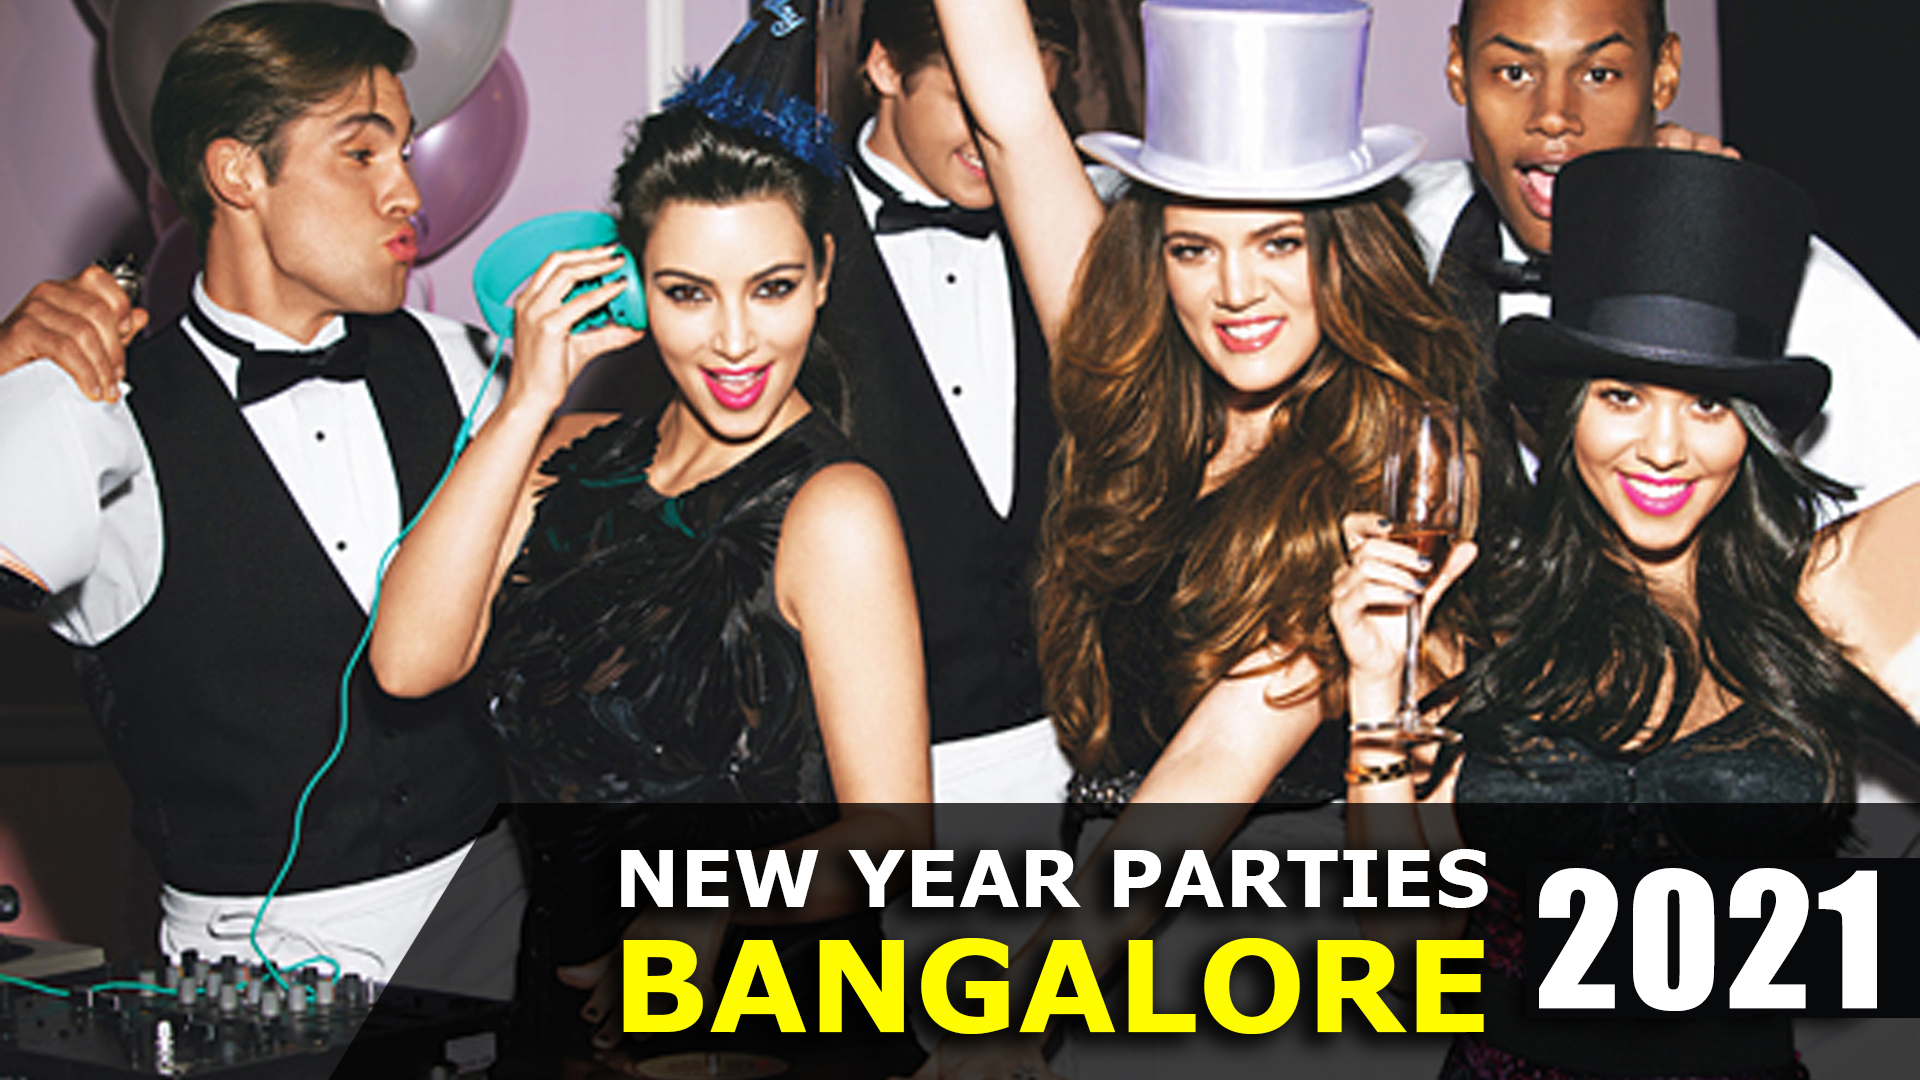 0 Handpicked New Year Events & Parties 2021 in Bangalore - HighApe